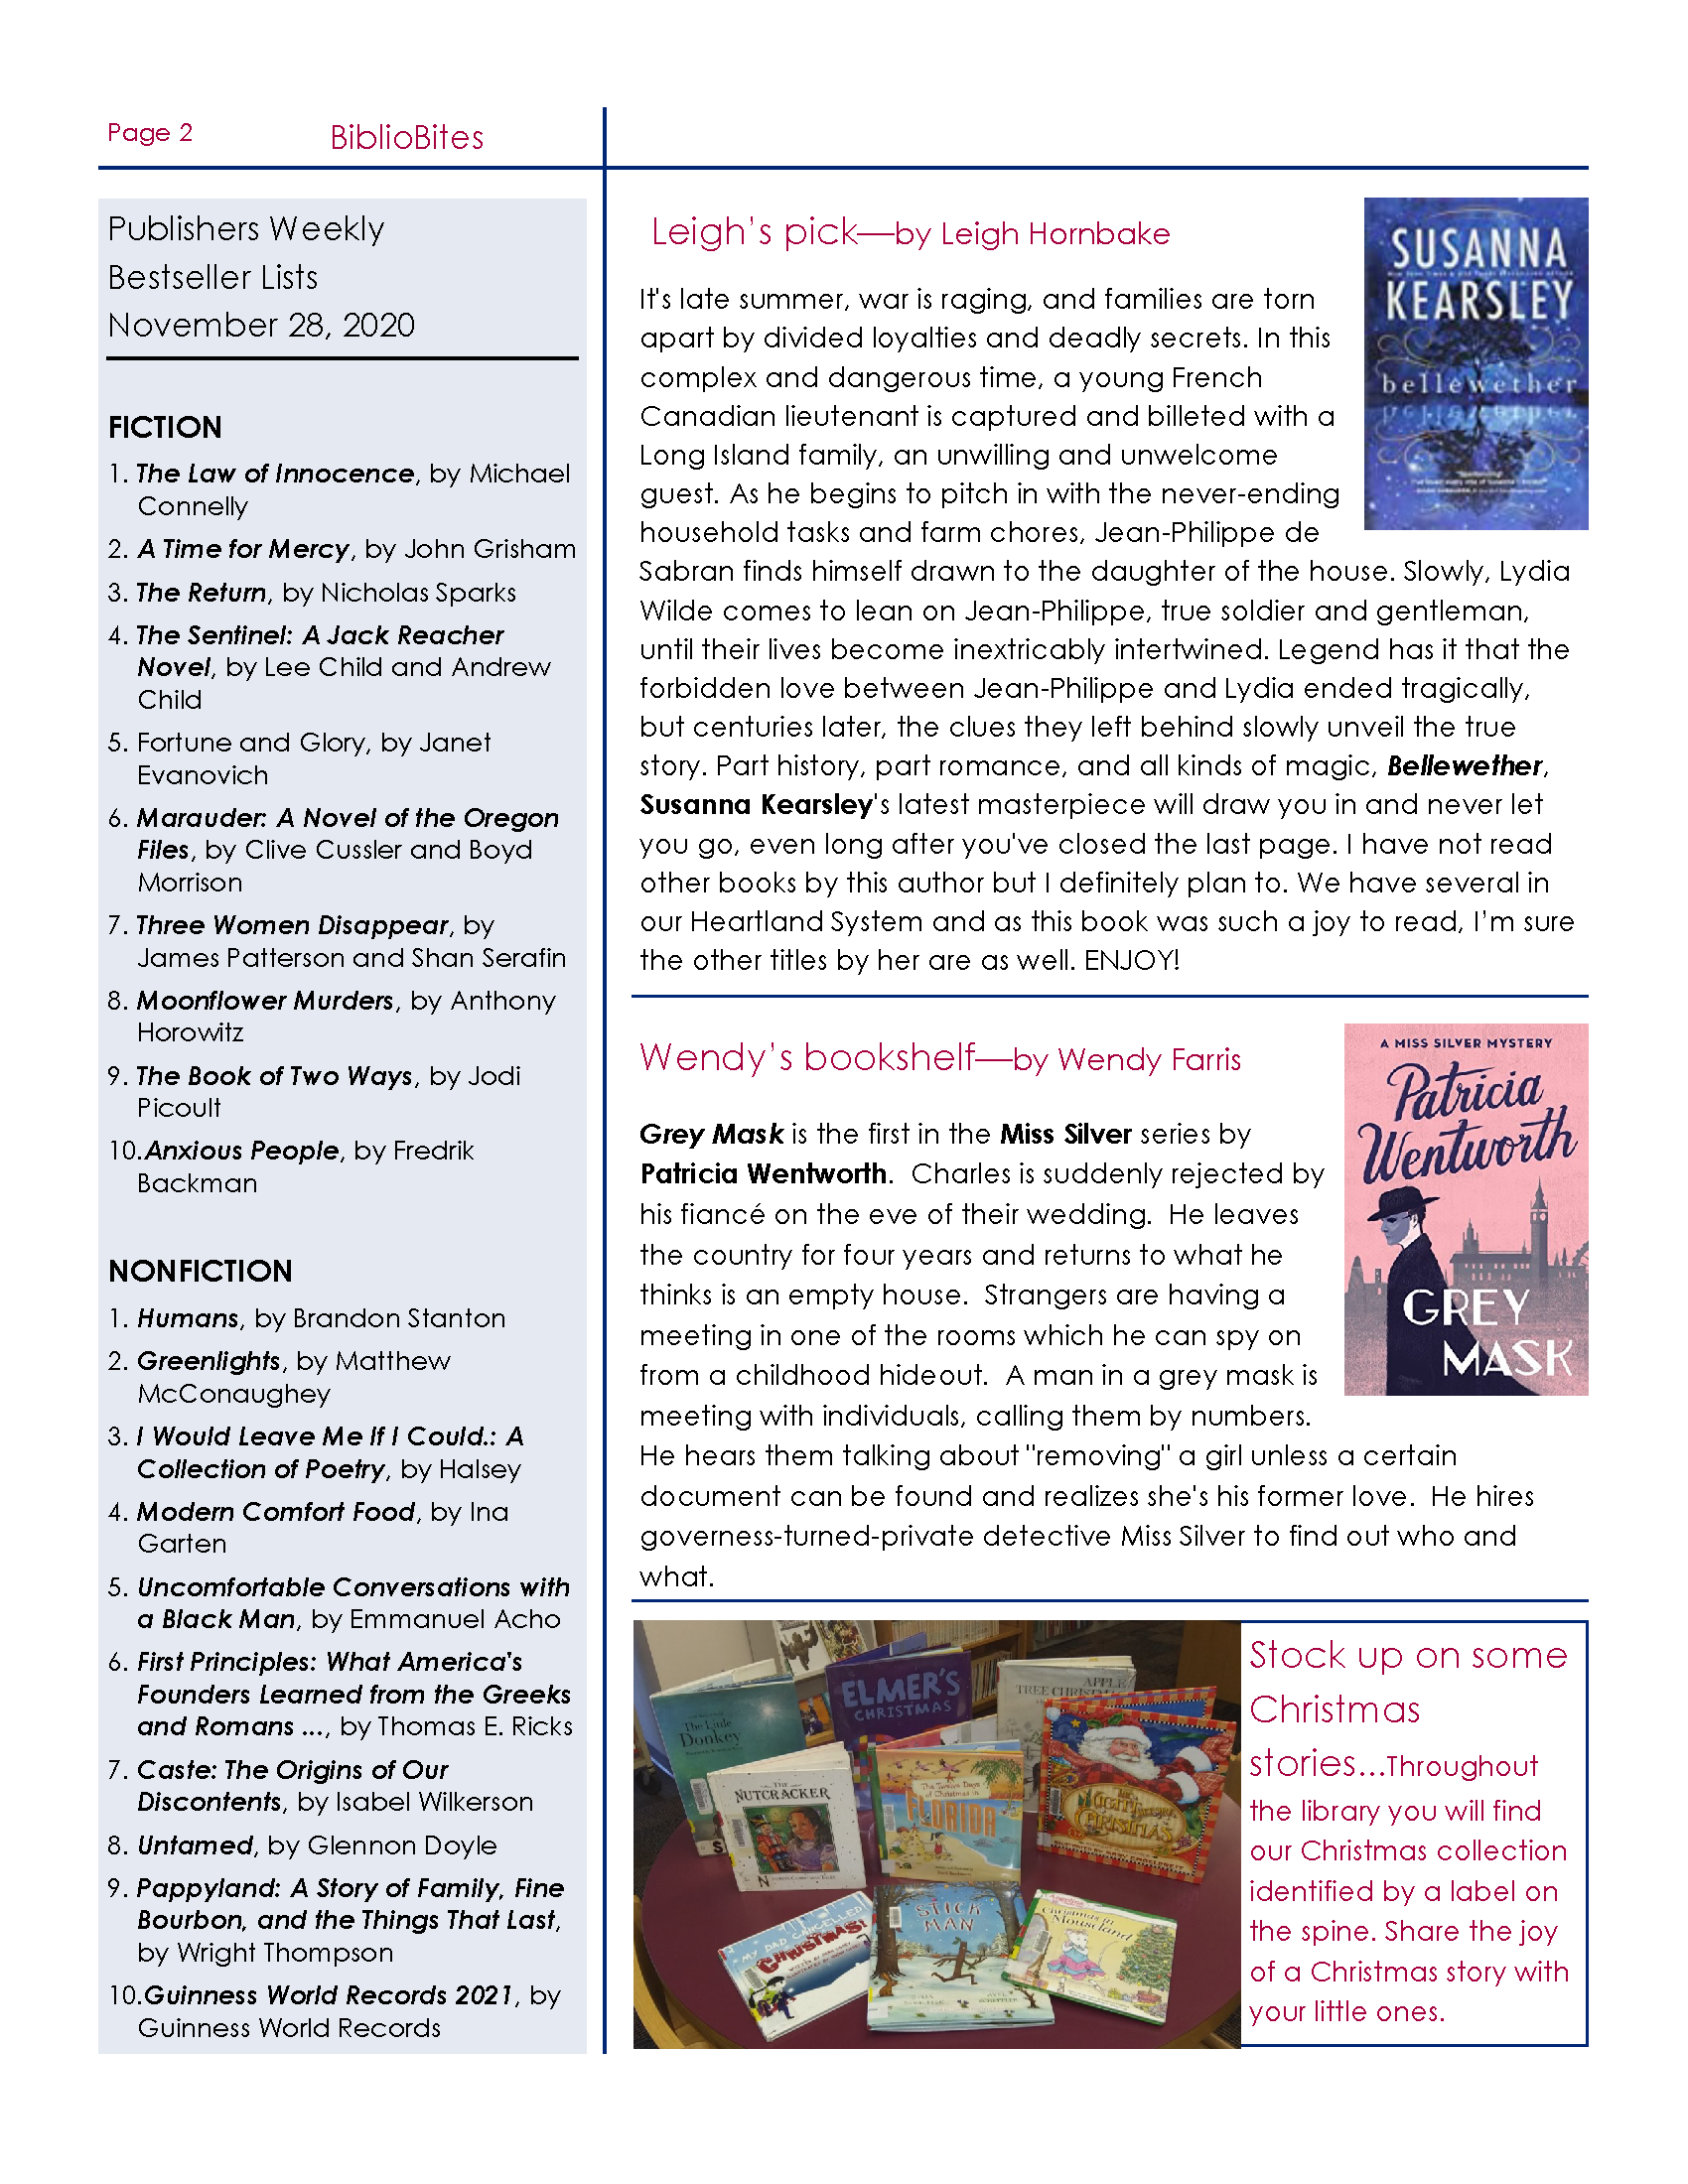 Page two of Friends of DeSoto County Library Association December Newsletter. Downloadable PDF available by clicking link before first  image.